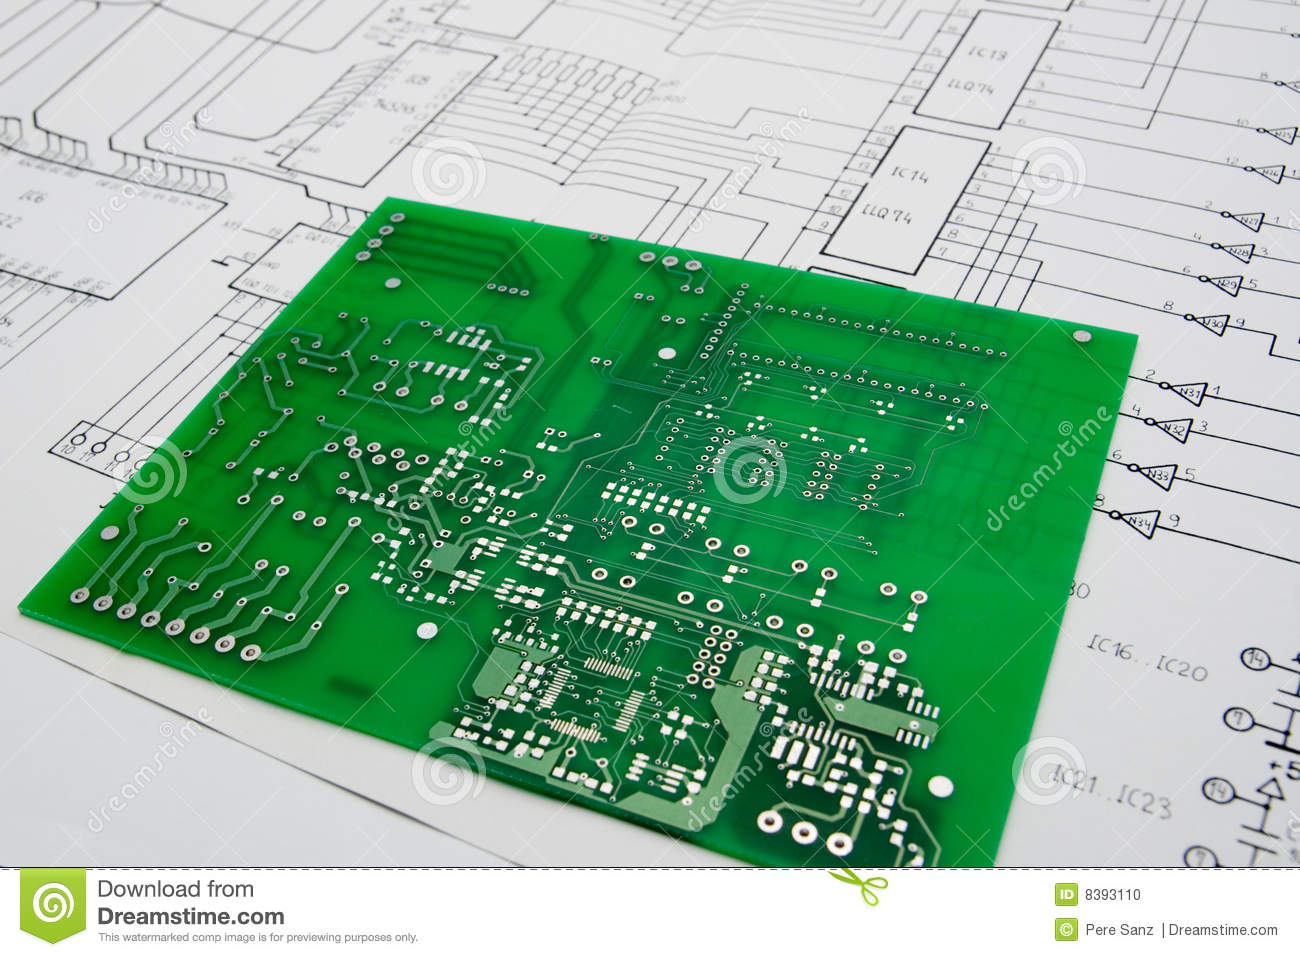 Working On An Electronic Project Stock Photo Image Of Abstract Printed Circuit Schematics Design Table With And Board